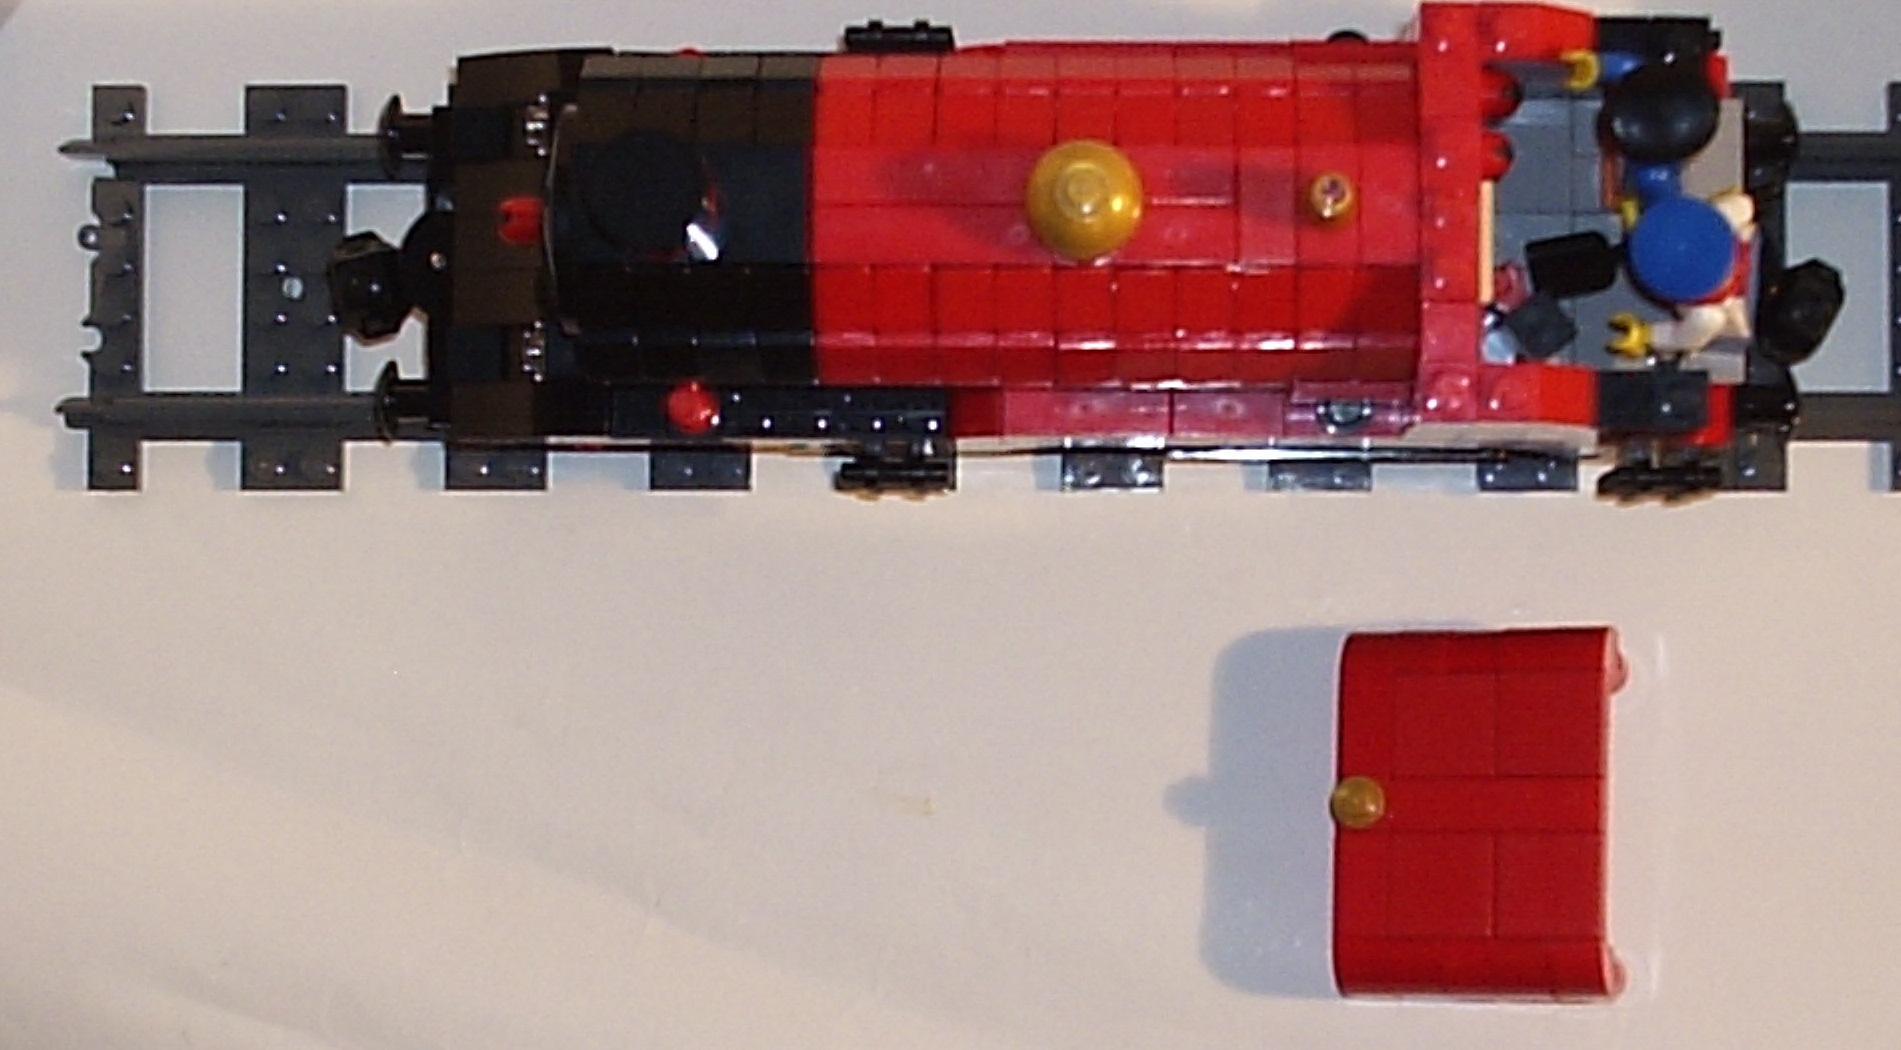 15_07_2012_red_and_black_4_4_0_tender_engine_i.jpg